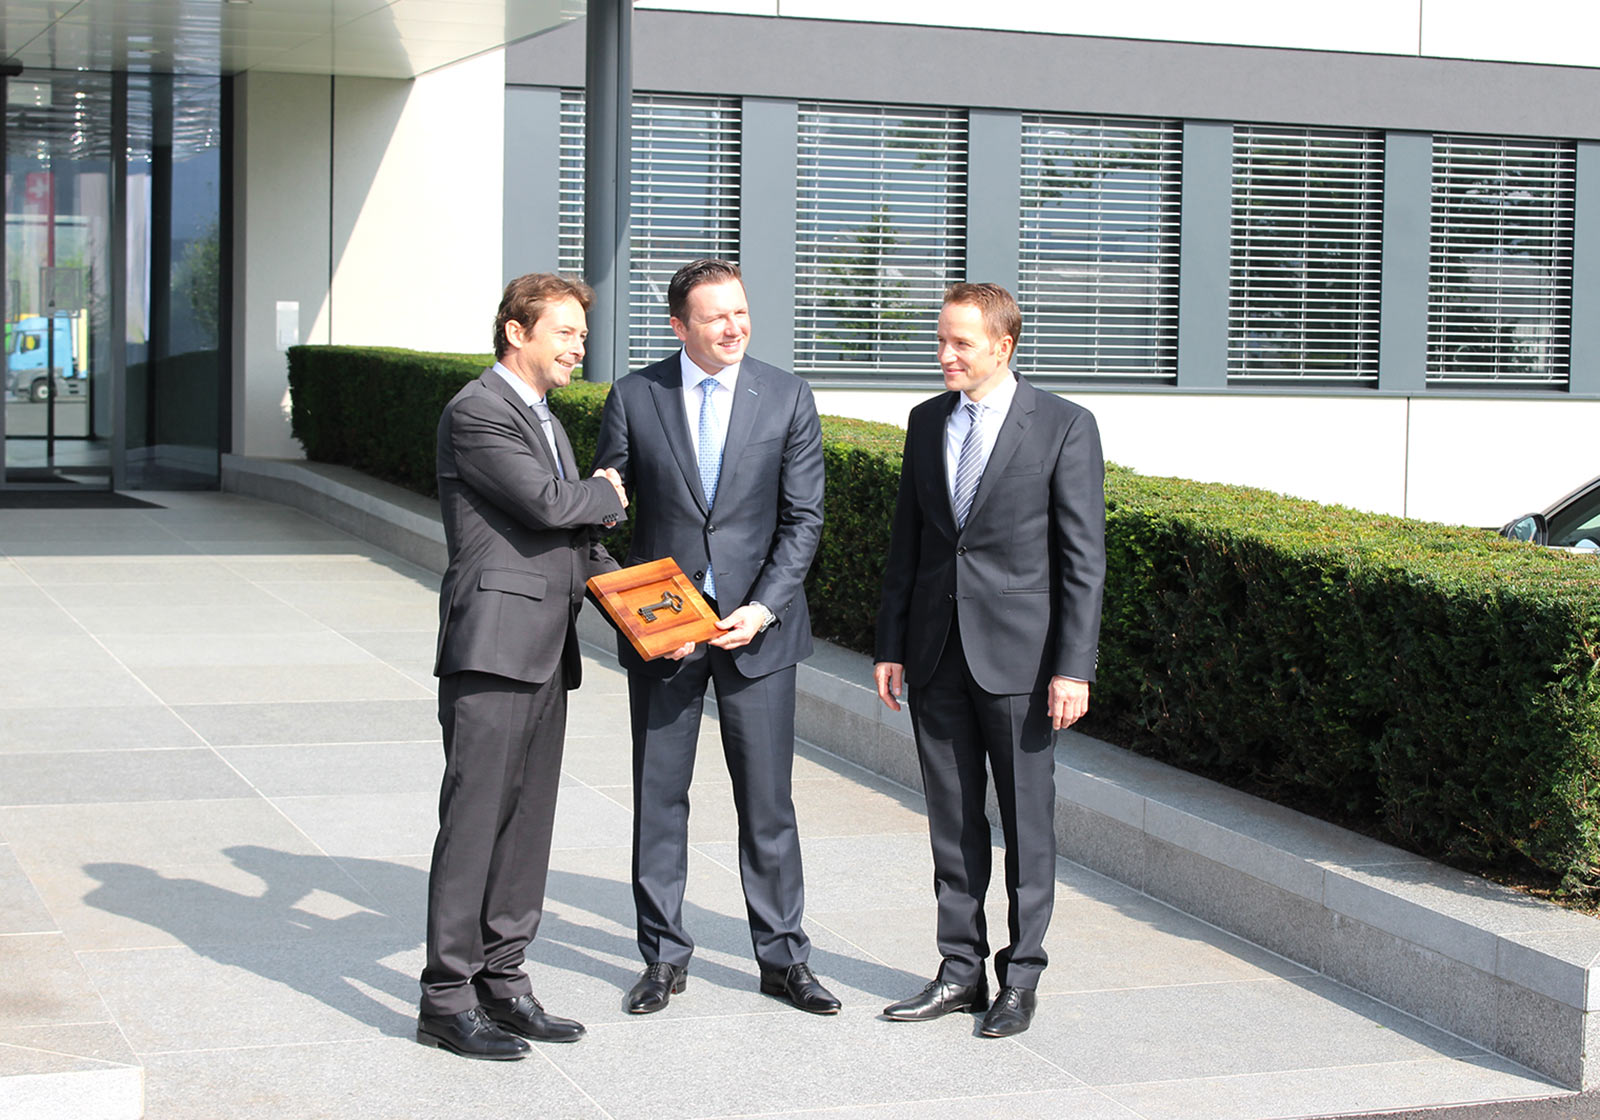 From left: ATP Overall Project Leader Albert Kompatscher with Robert Pontius, ALDI Perlen und Timo Schuster, ALDI Suisse at the key delivery. Photo: ATP